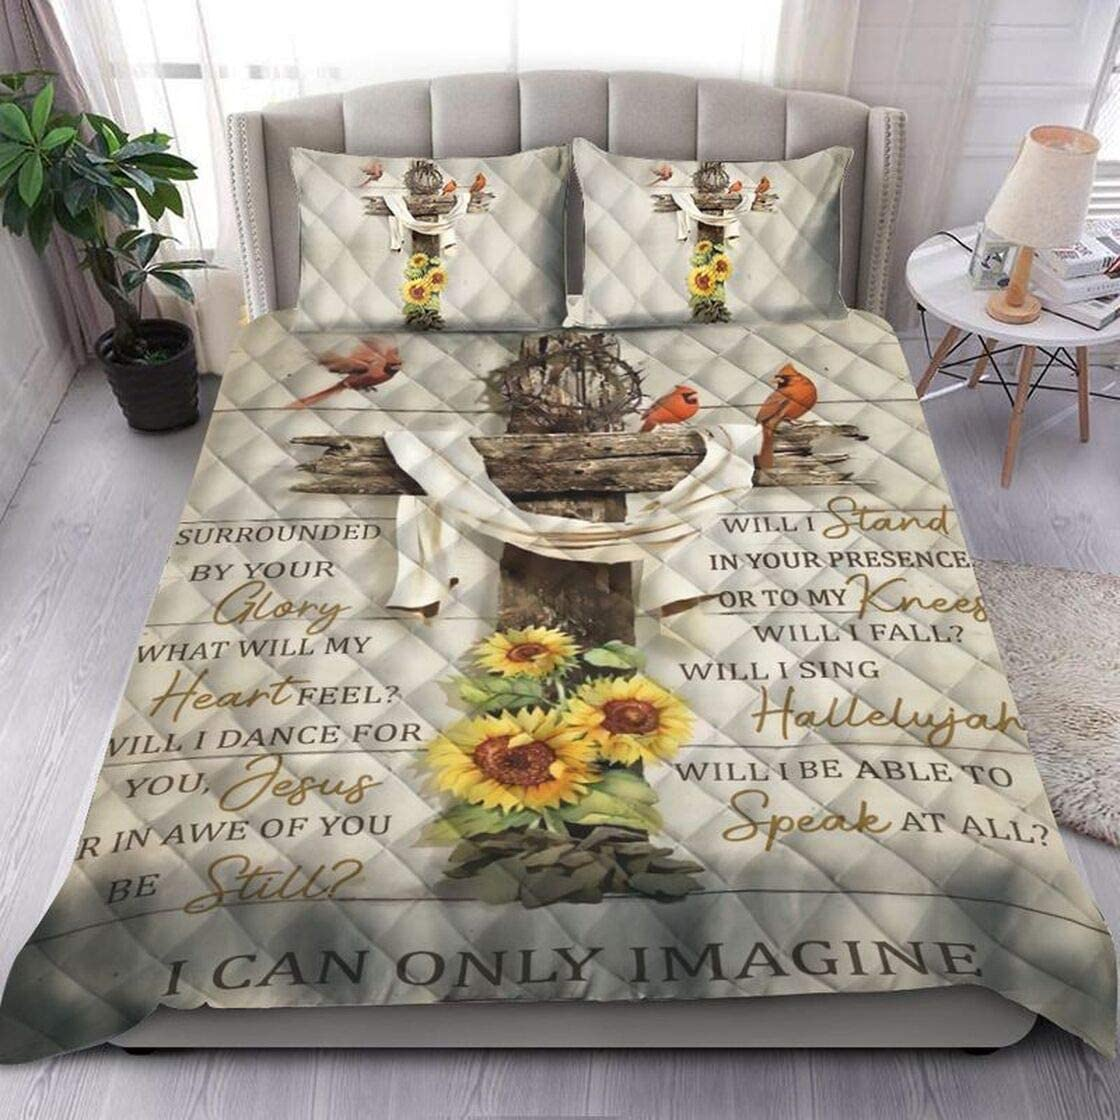 Personalized Jesus Quilt Ranking TOP14 Sets I Imagine Only Gift Can half Birthday